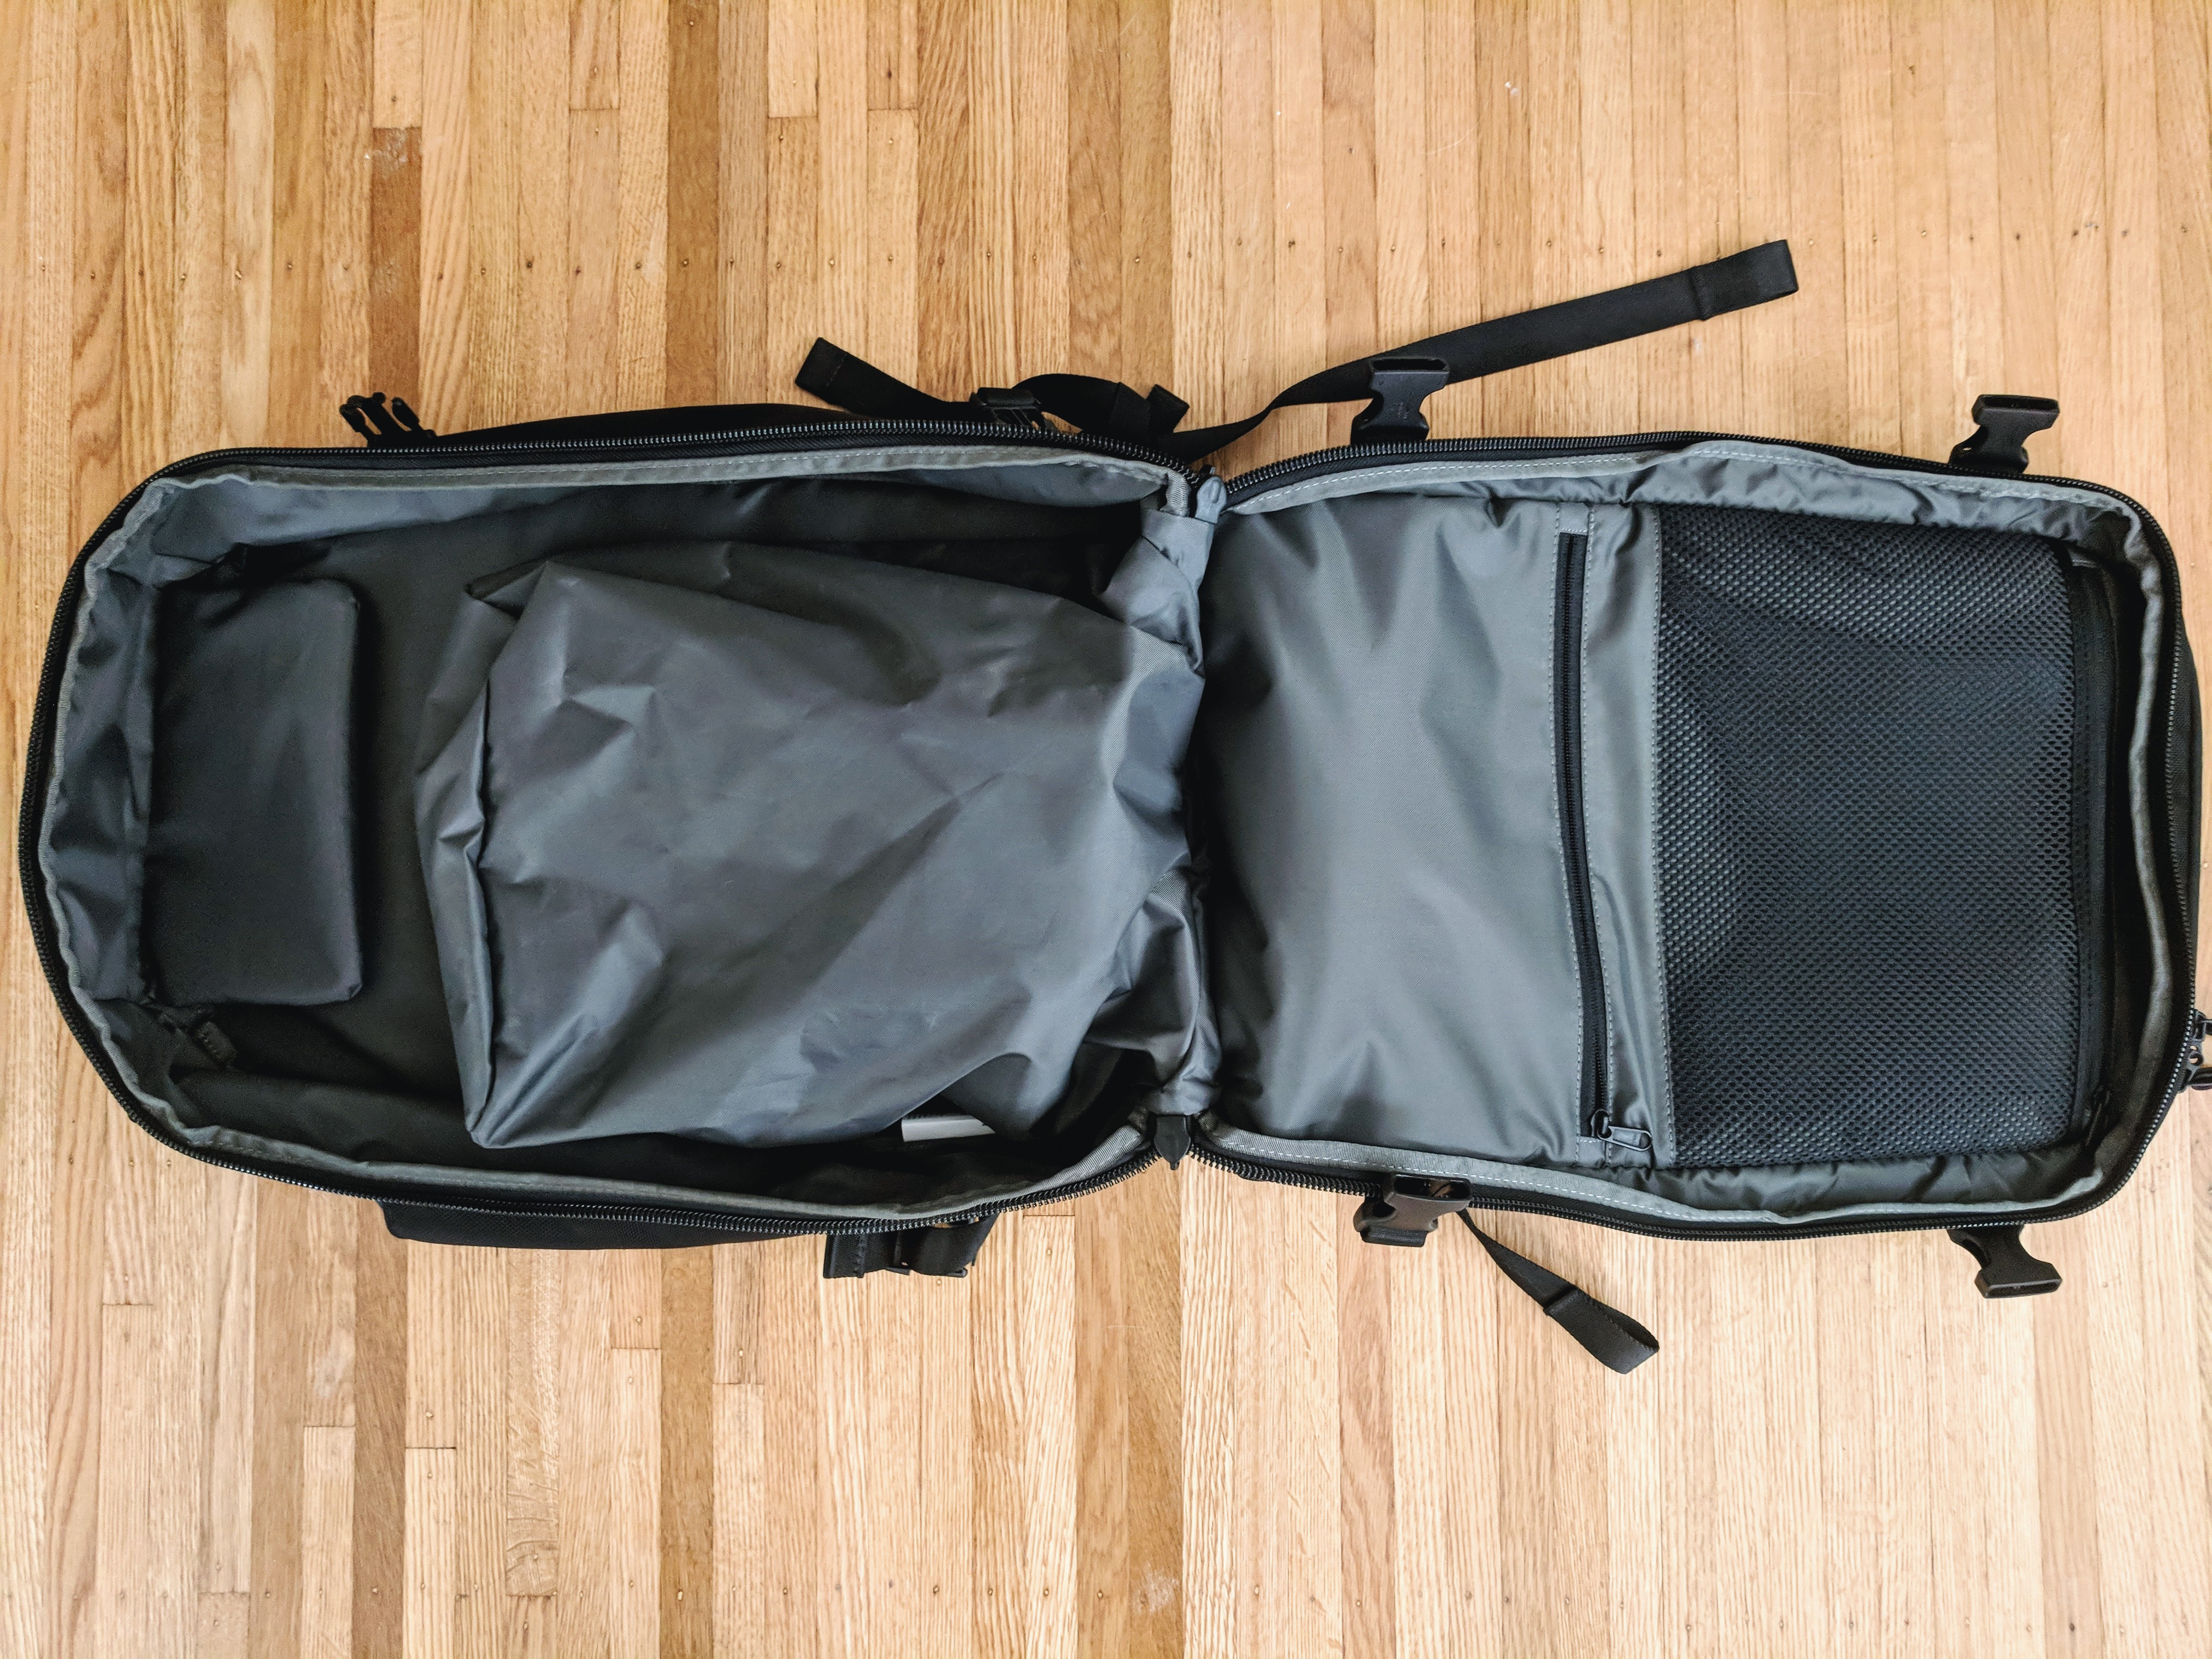 Aer Travel Pack 2 backpack clamshell opening interior open zippers shoe compartment interior layout empty